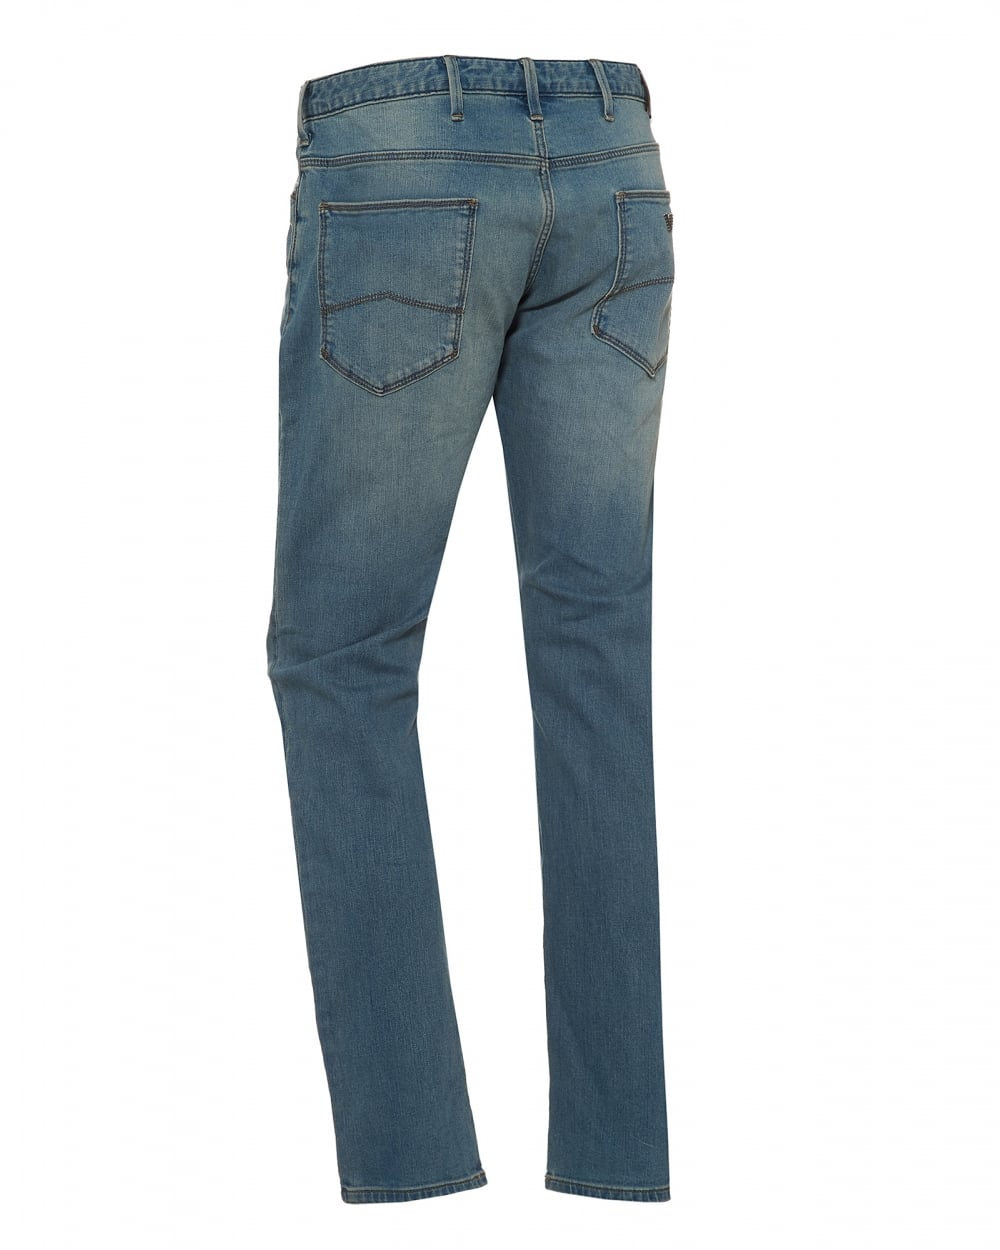 47c425ef504a Emporio Armani Mens J06 Slim Fit Stretch Cotton Light Whisker Blue Jeans